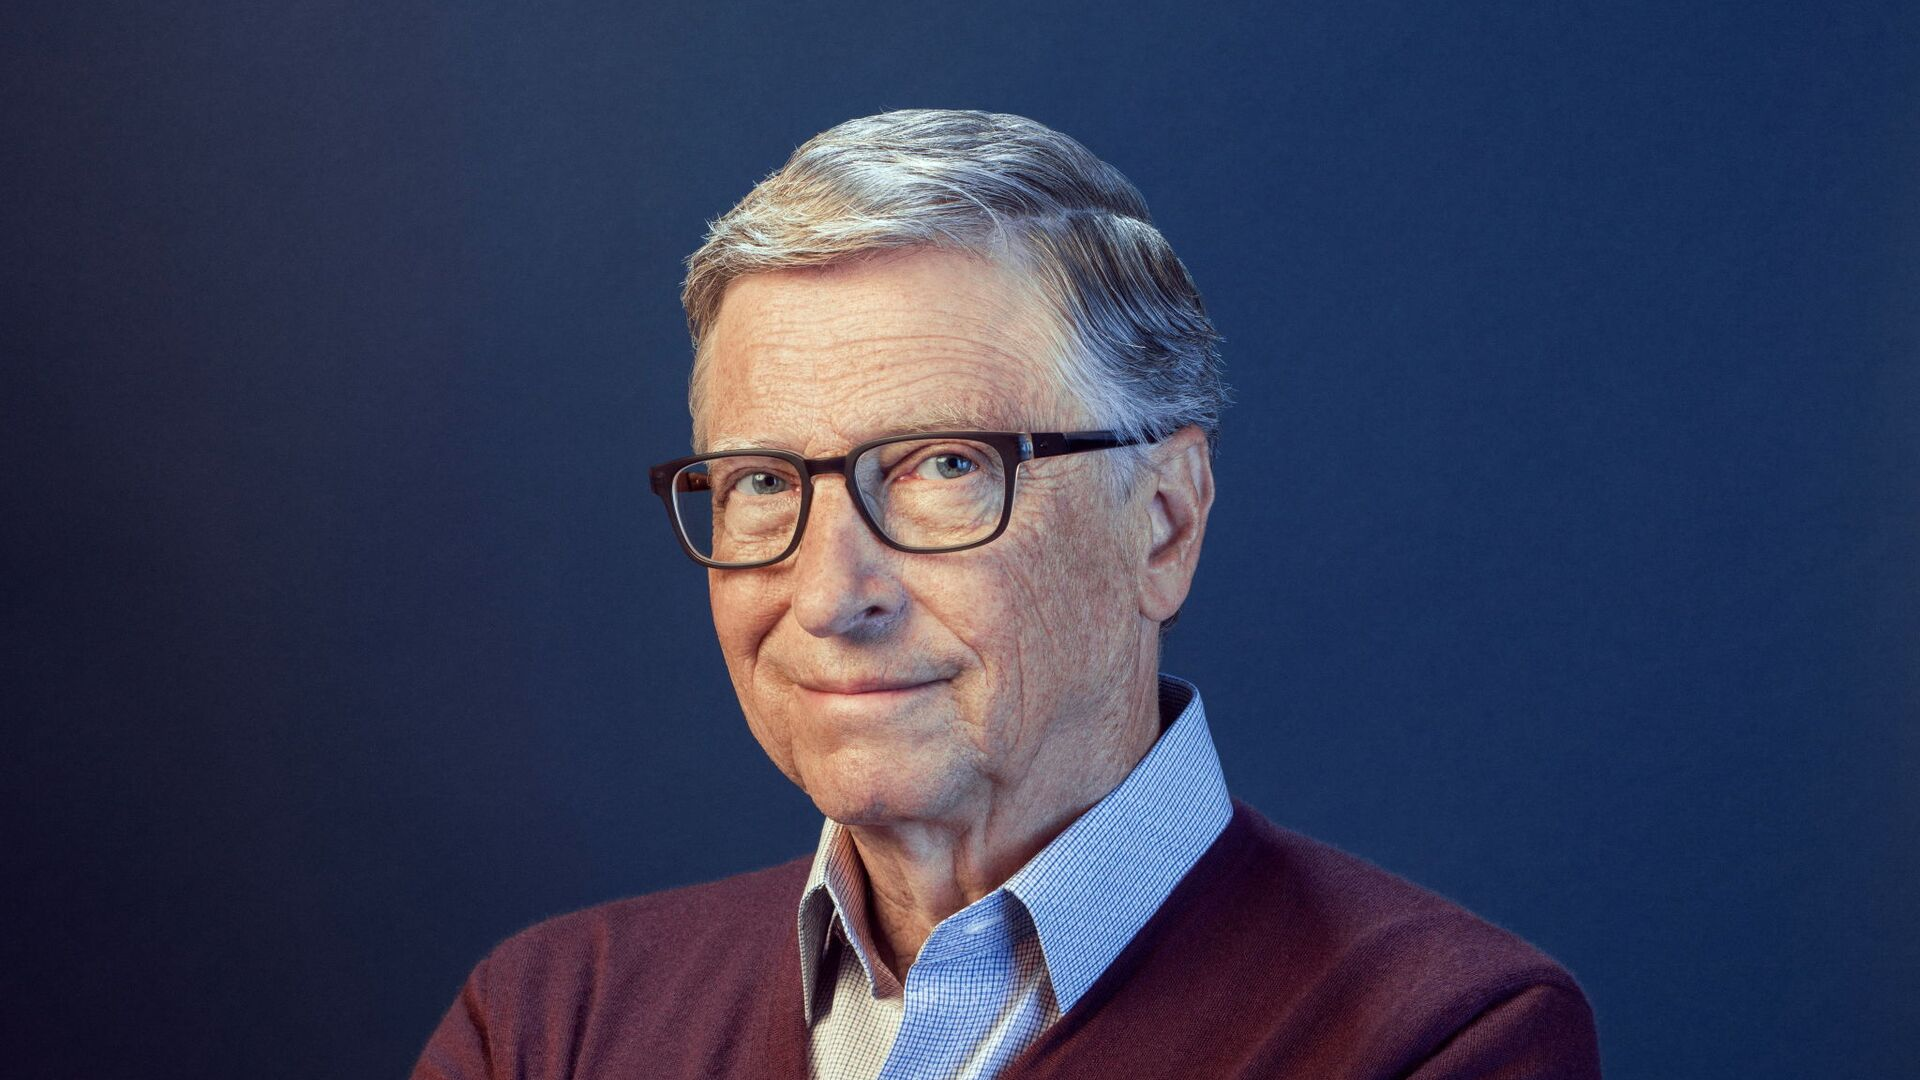 Bill Gates poses in this undated handout photo obtained by Reuters on February 15, 2021 - Sputnik Italia, 1920, 12.08.2021